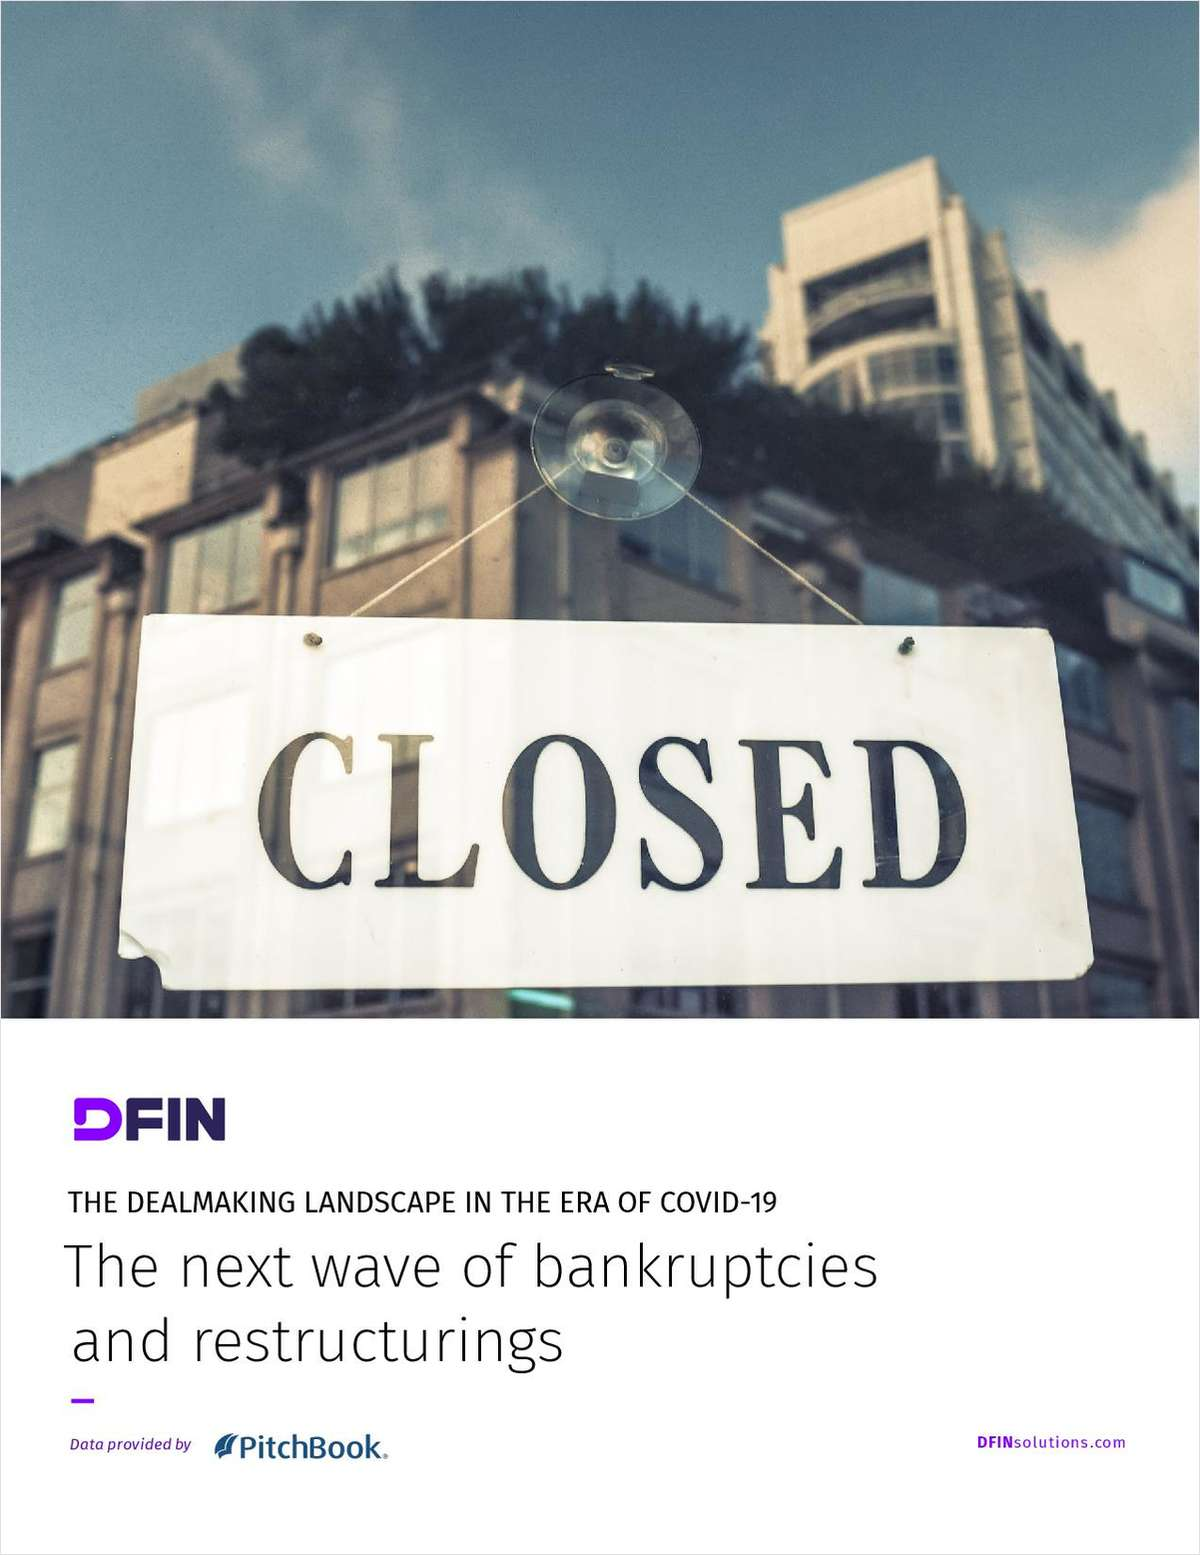 The Dealmaking Landscape in the Era of COVID-19: The next wave of bankruptcies and restructurings